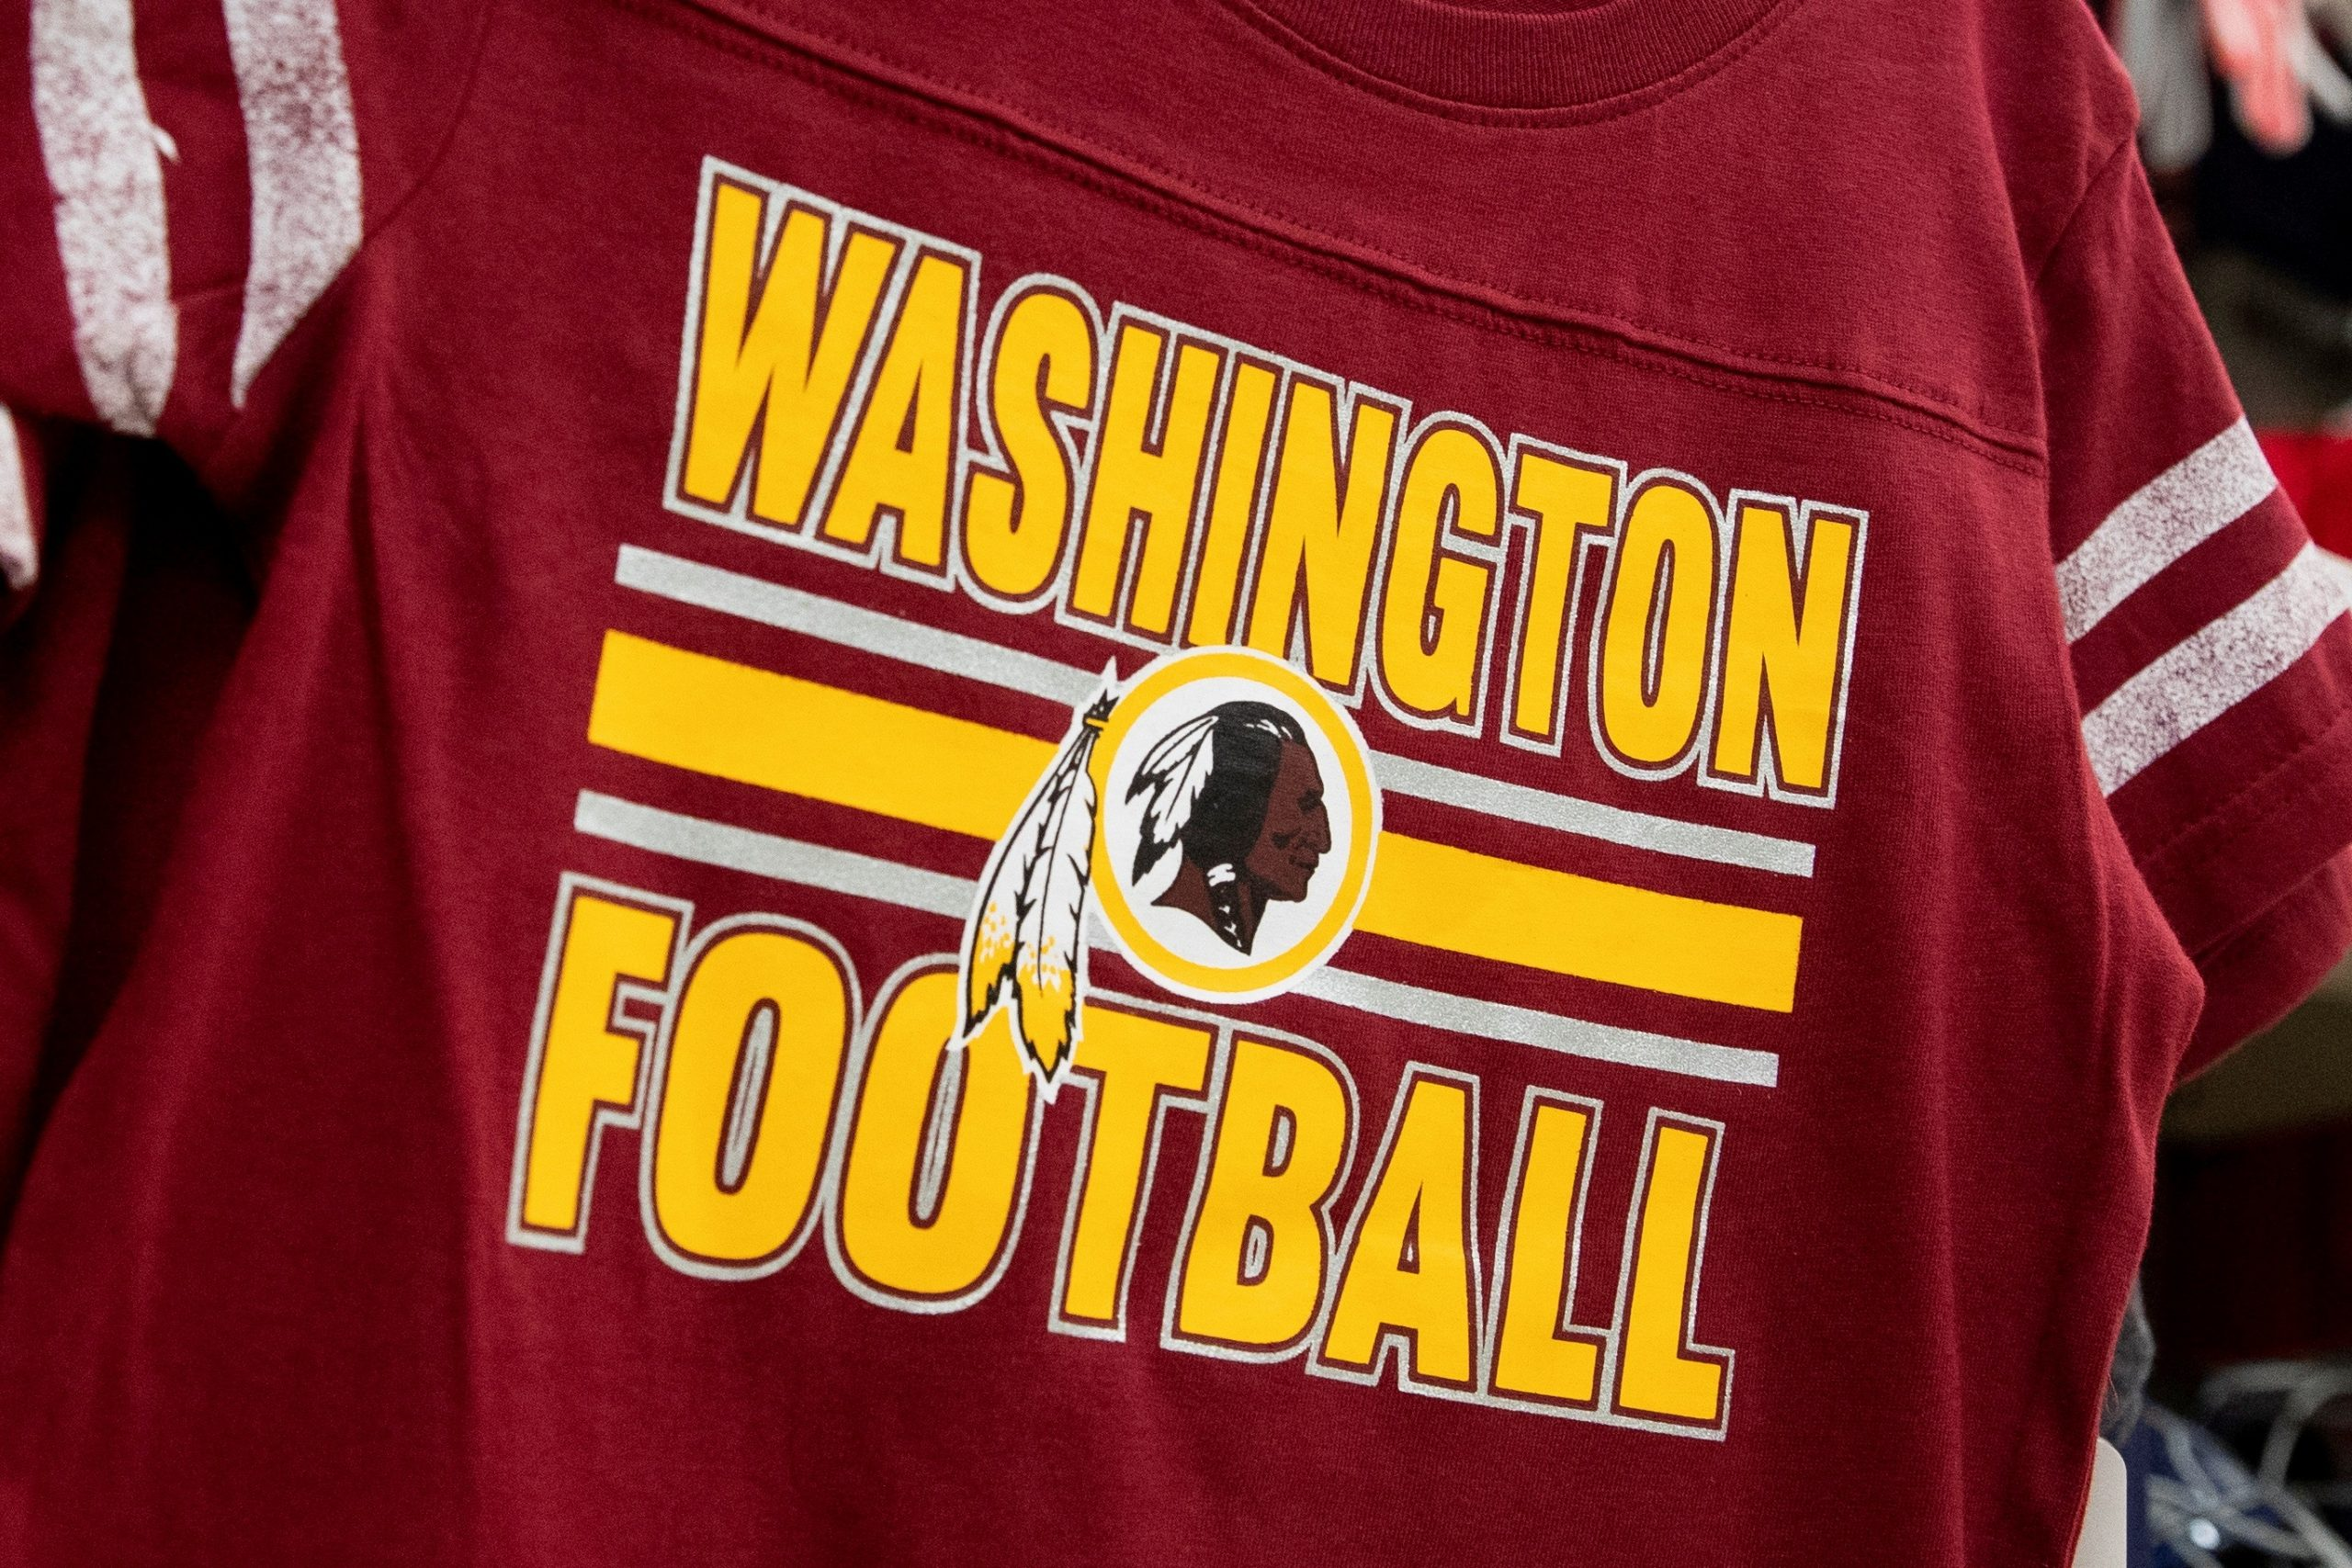 Playera de los Redskins